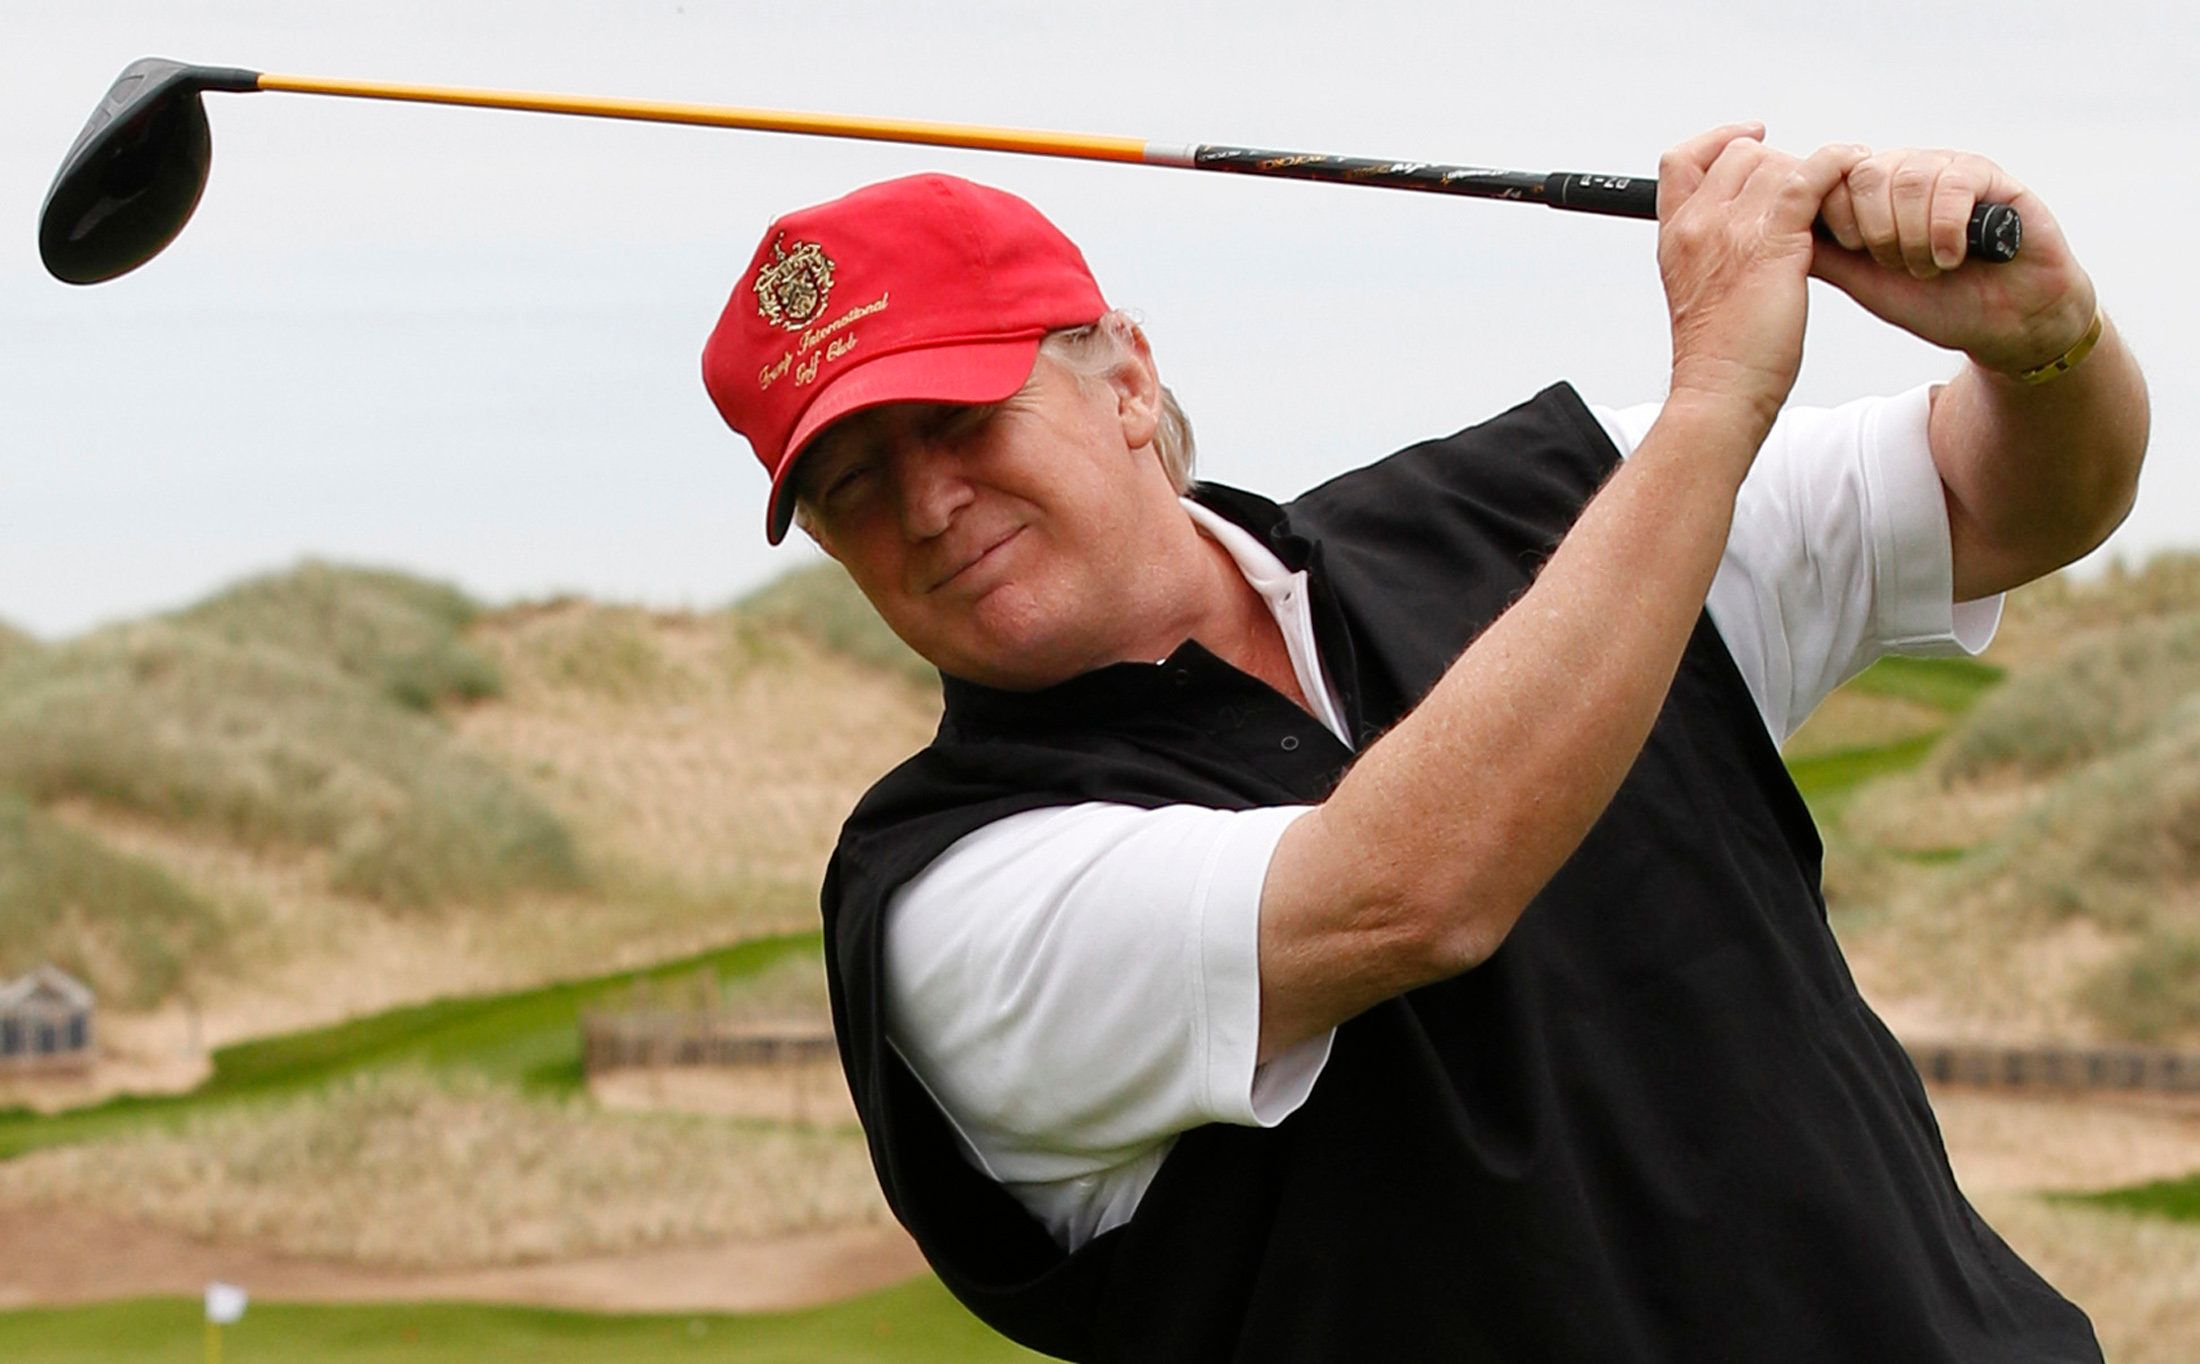 Donald Trump Tends To Cheat During Golf, Oscar De La Hoya